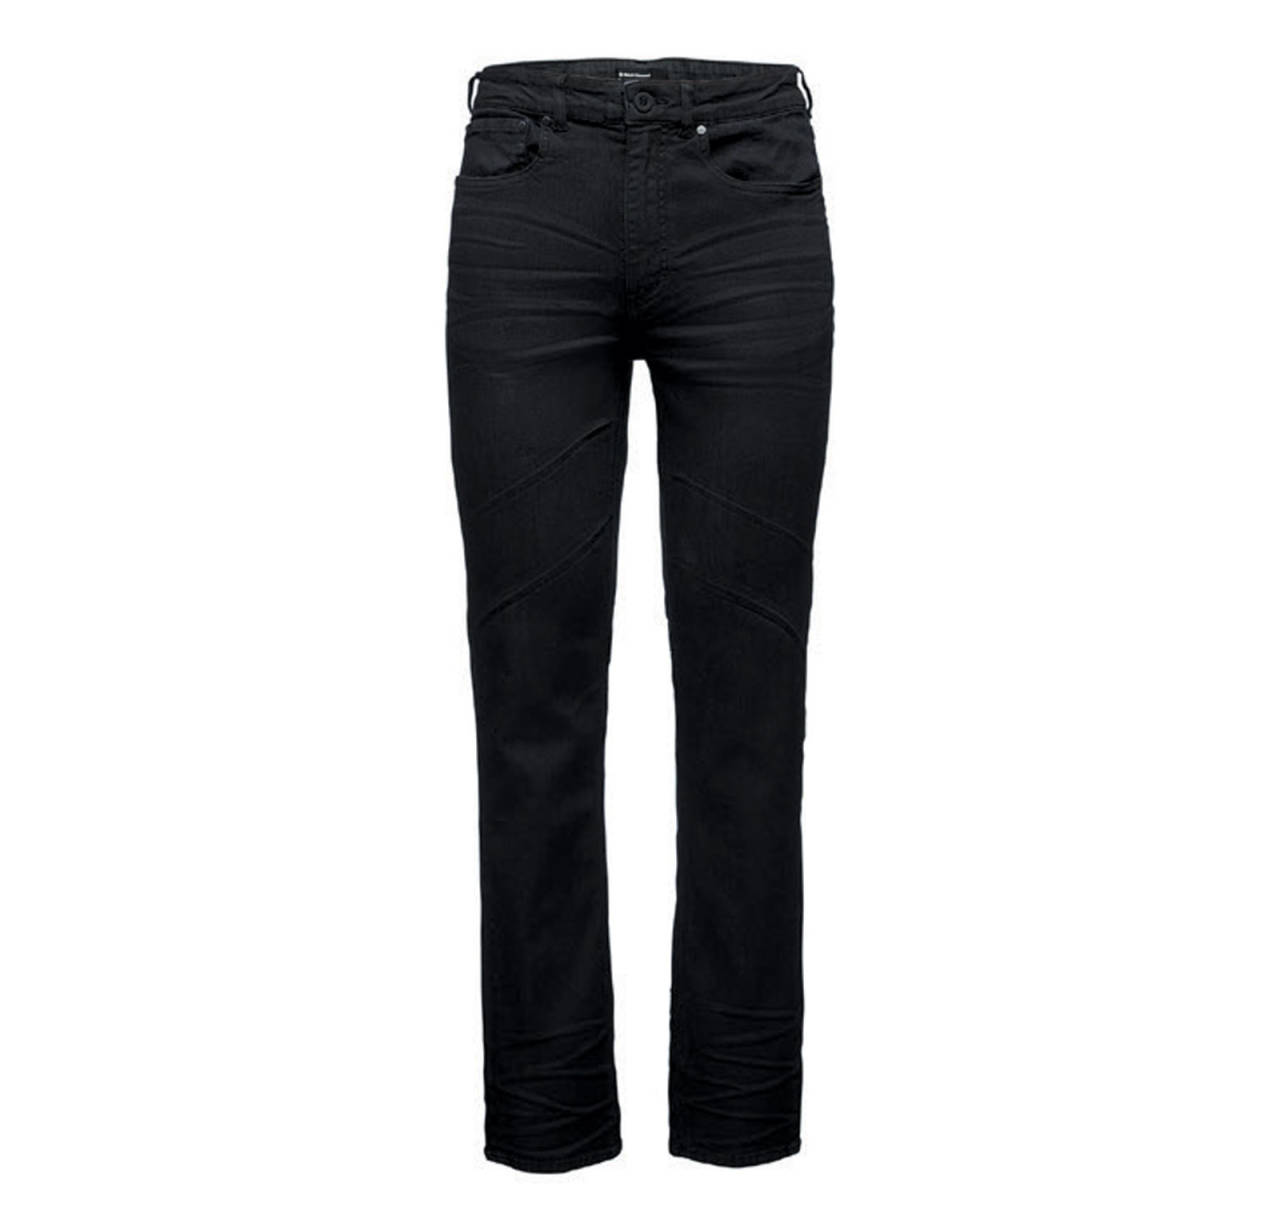 Black Diamond Forged Denim pants